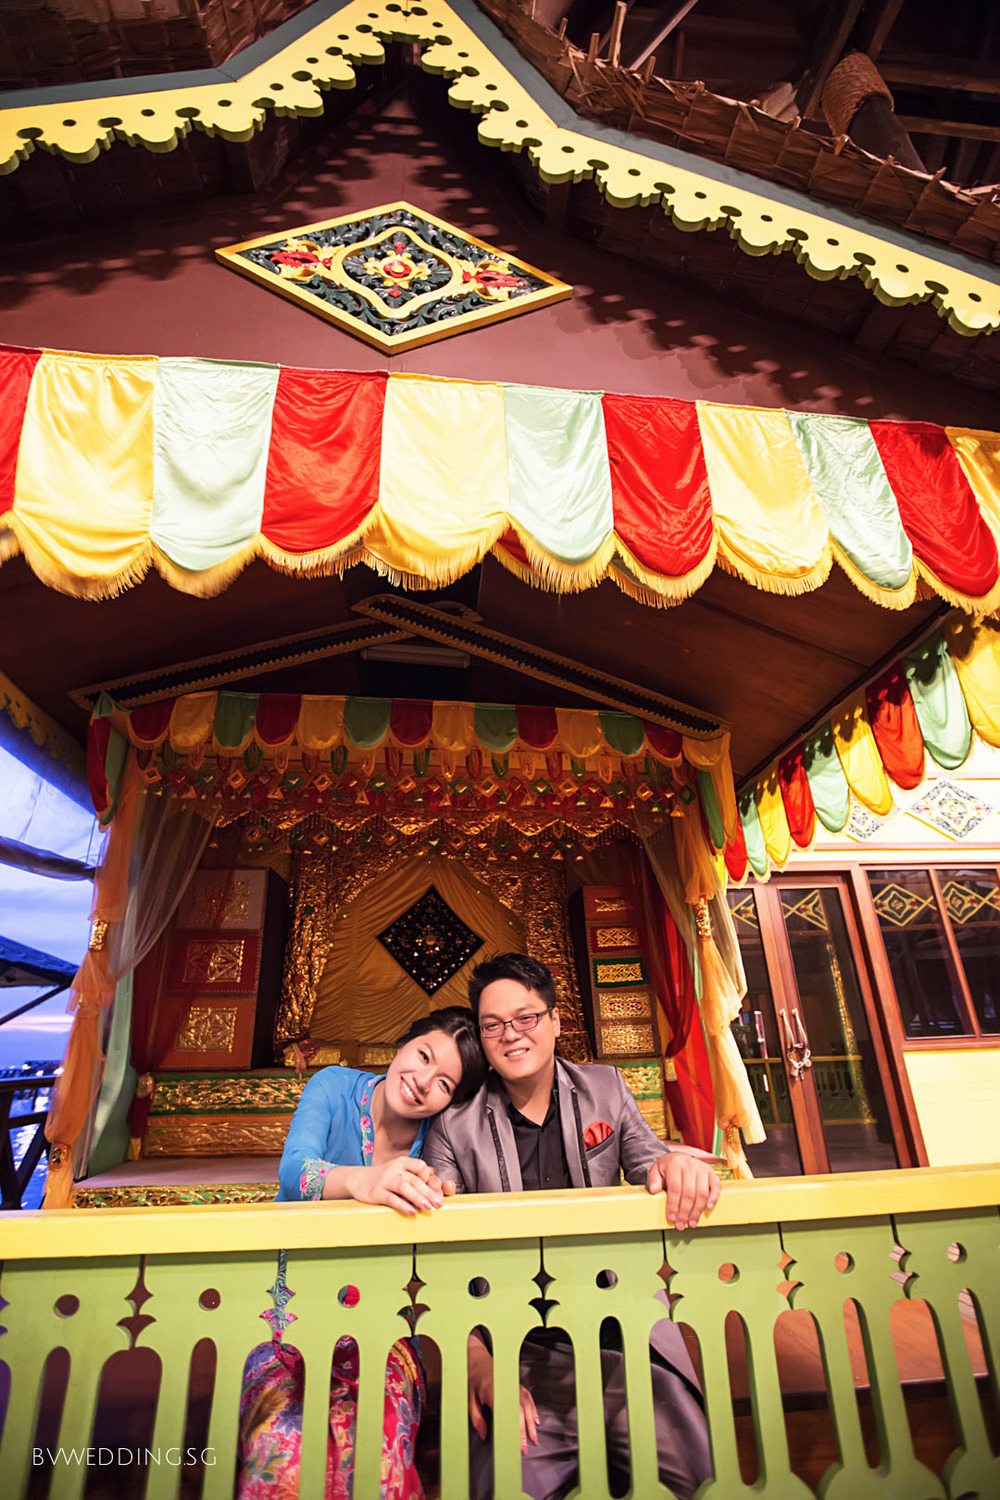 Pre-wedding photoshoot at Bintan Island Peranakan style